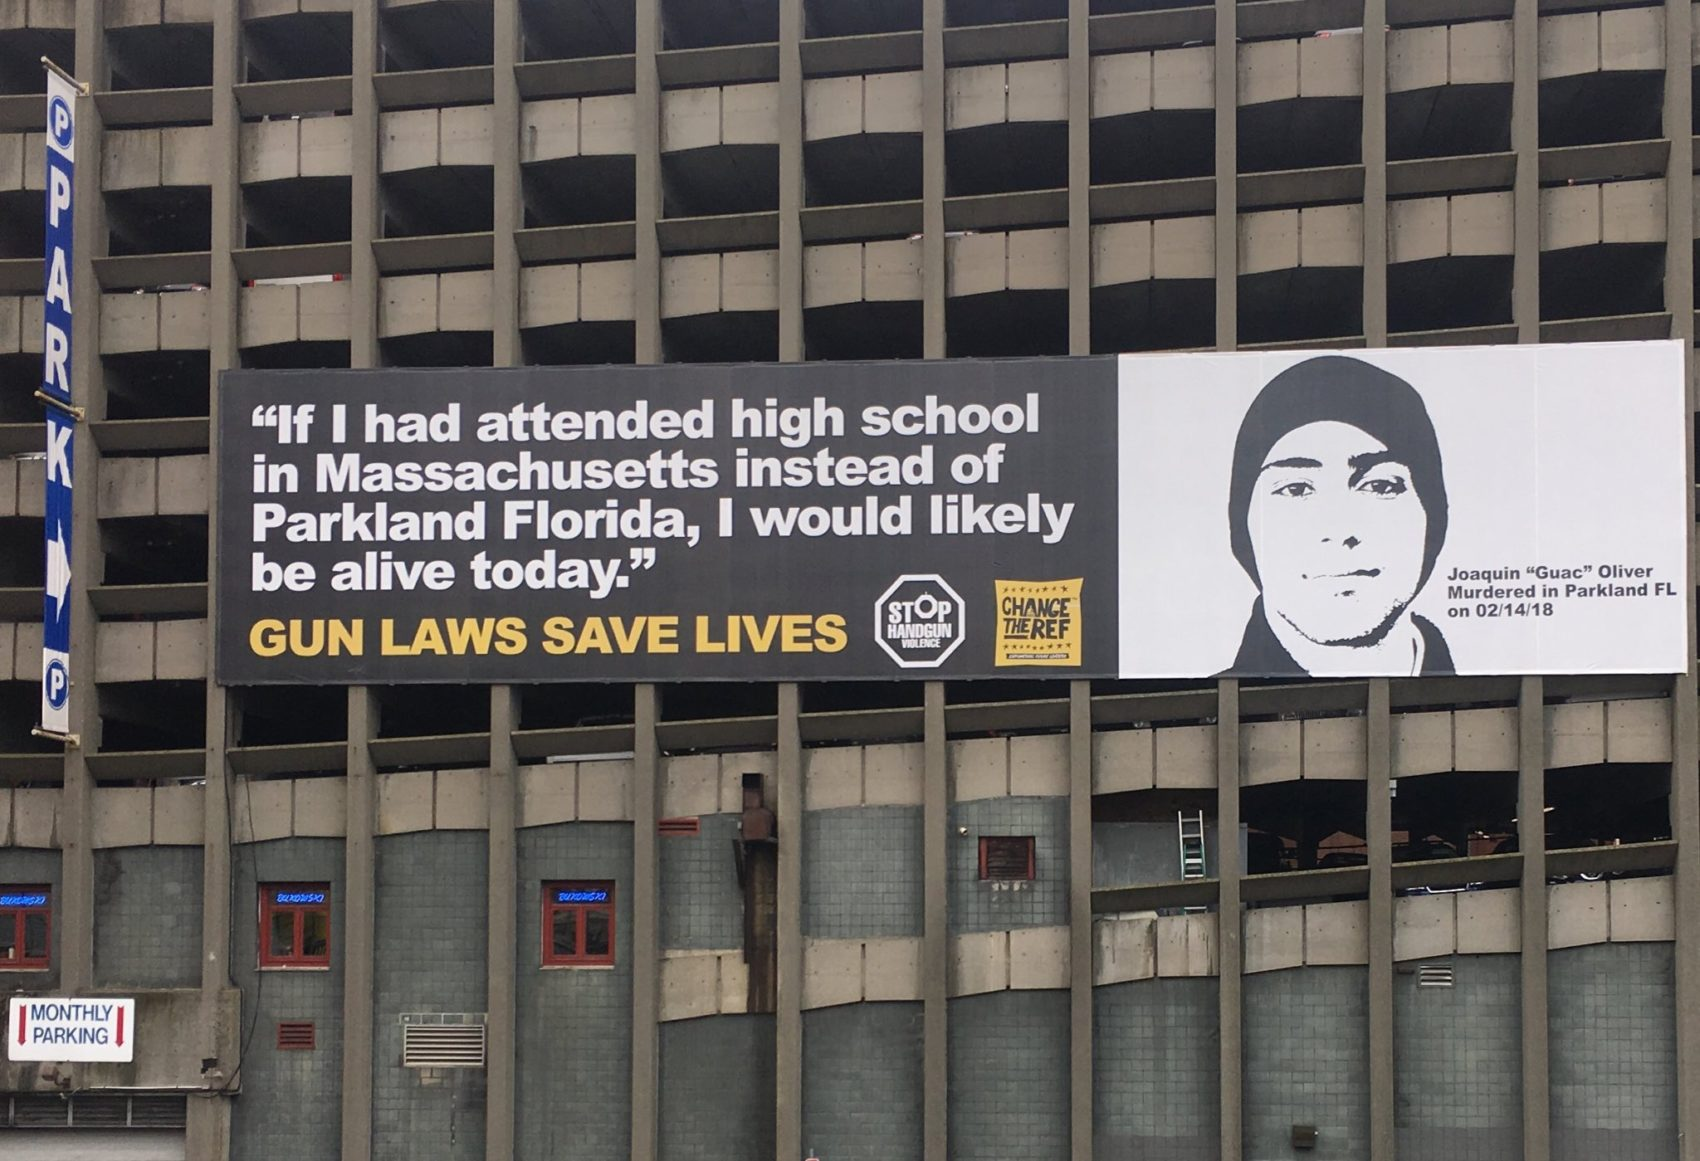 Parents of Parkland shooting victim Joaquin Oliver joined state and federal officials for the unveiling of a billboard over the Massachusetts Turnpike in the Back Bay, calling for other states to replicate Bay State gun laws. (Katie Lannan/SHNS)